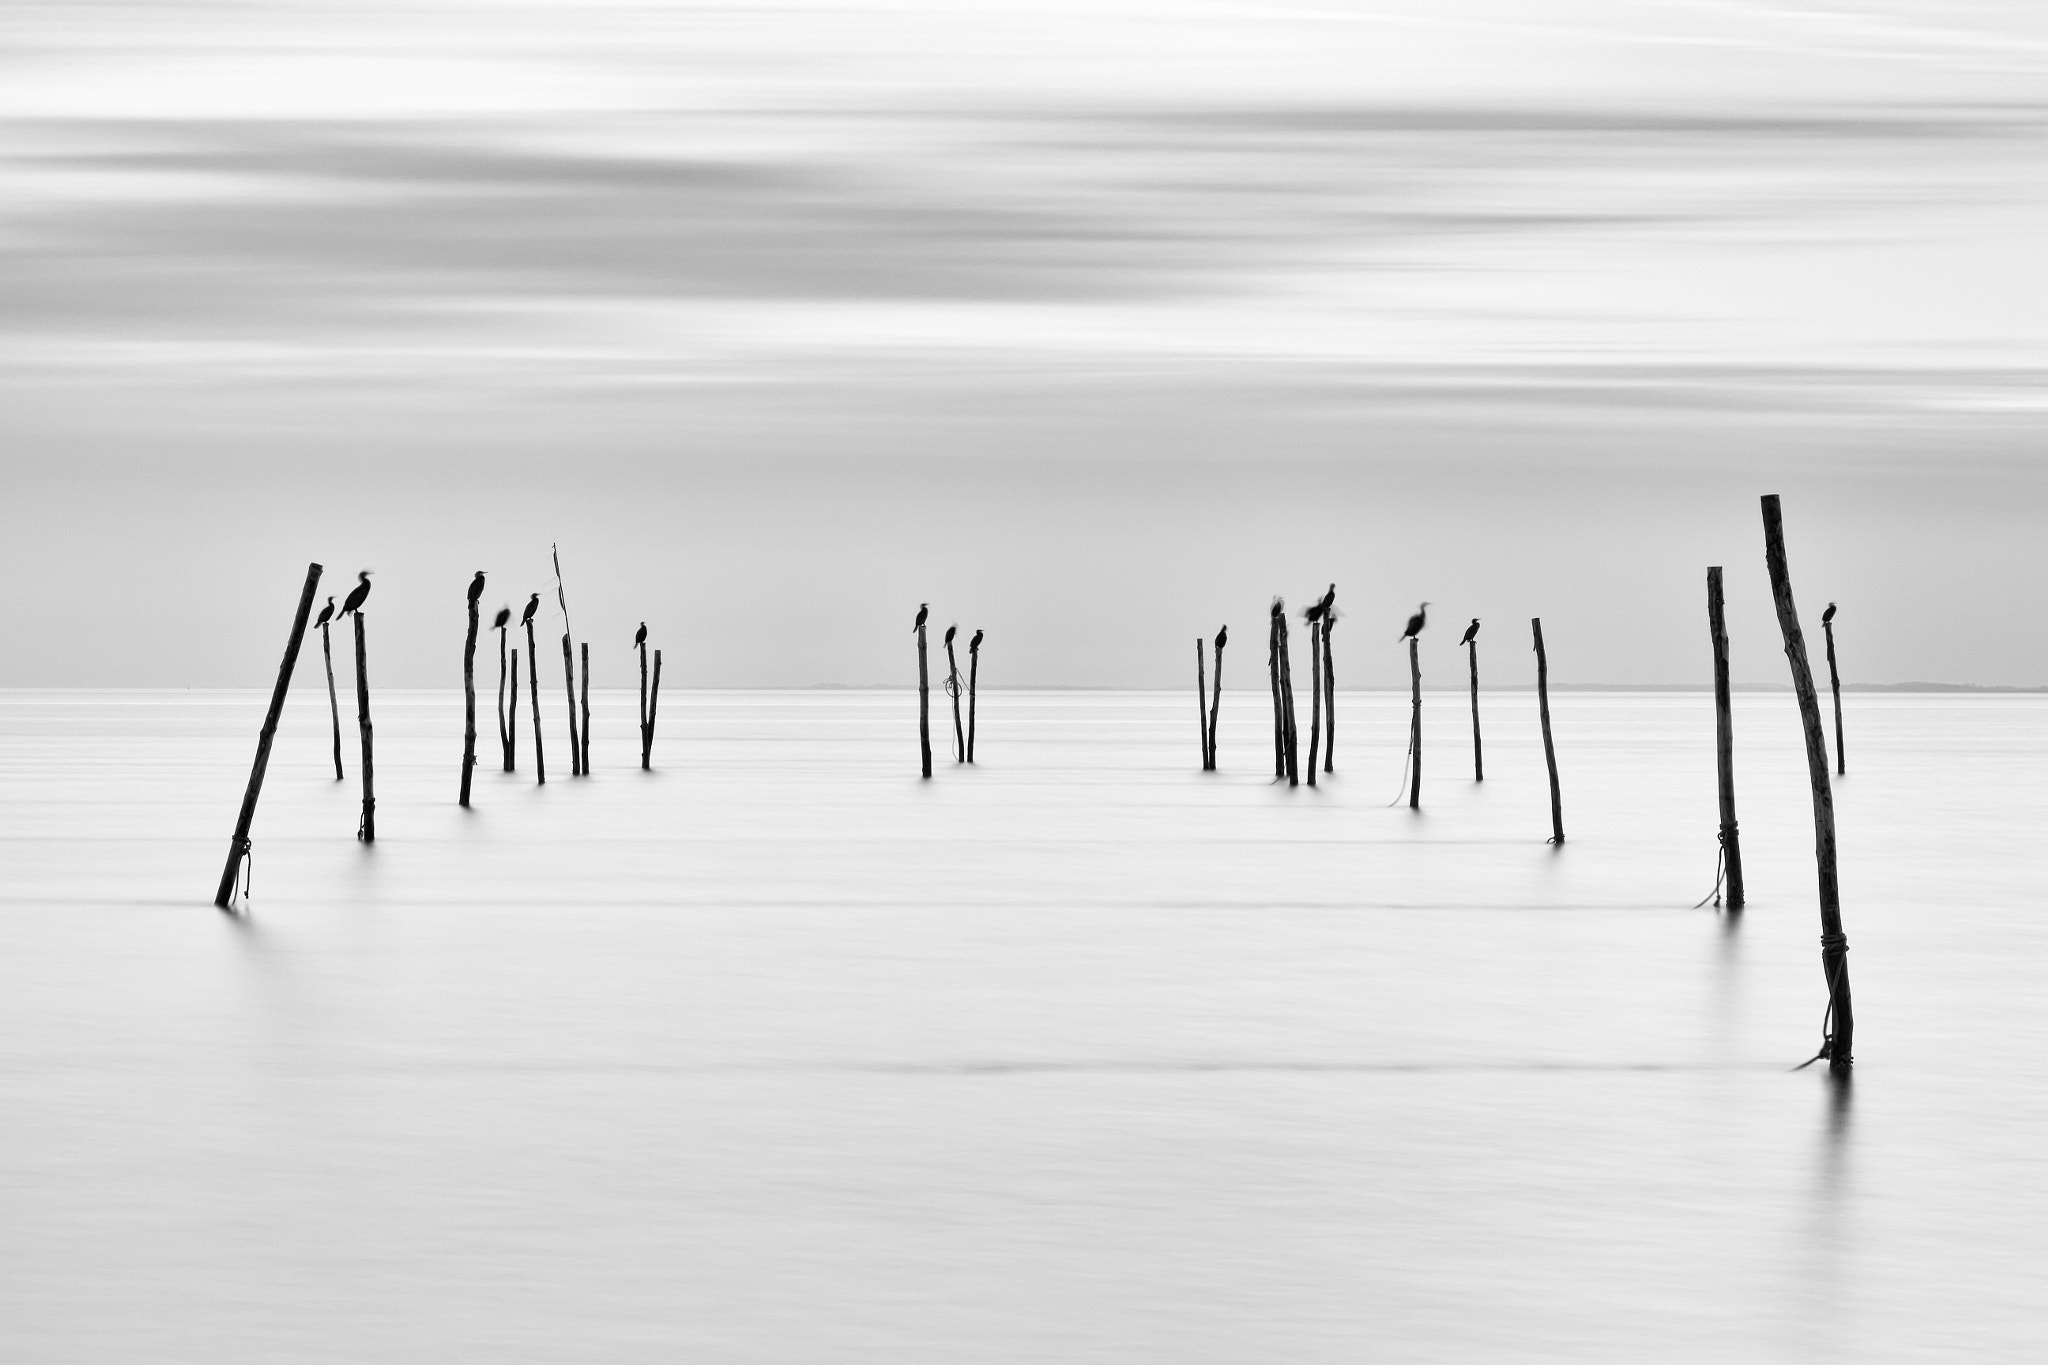 Photograph The Stakes by Steen Nielsen on 500px